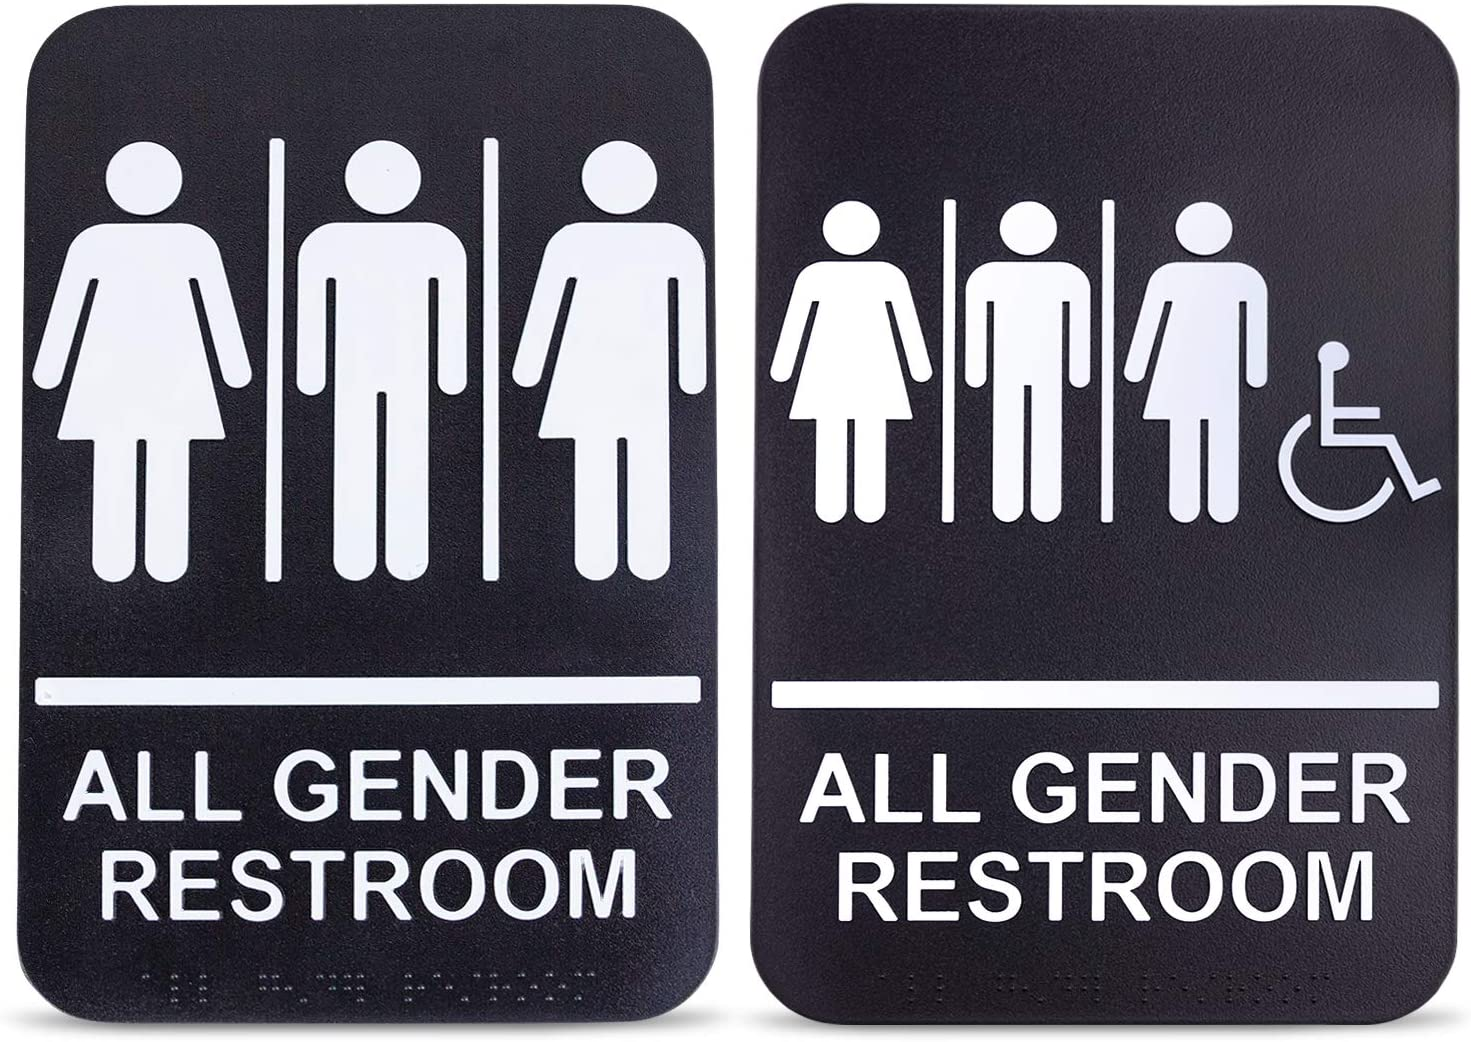 [2 Pack] All Gender Bathroom Signs for Business and Unisex Restroom Sign with Handicap - 6 x 9 Inch Braille Black White ADA Compliant Adhesive Toilet Signages for Offices Door and Restaurants DŽcor